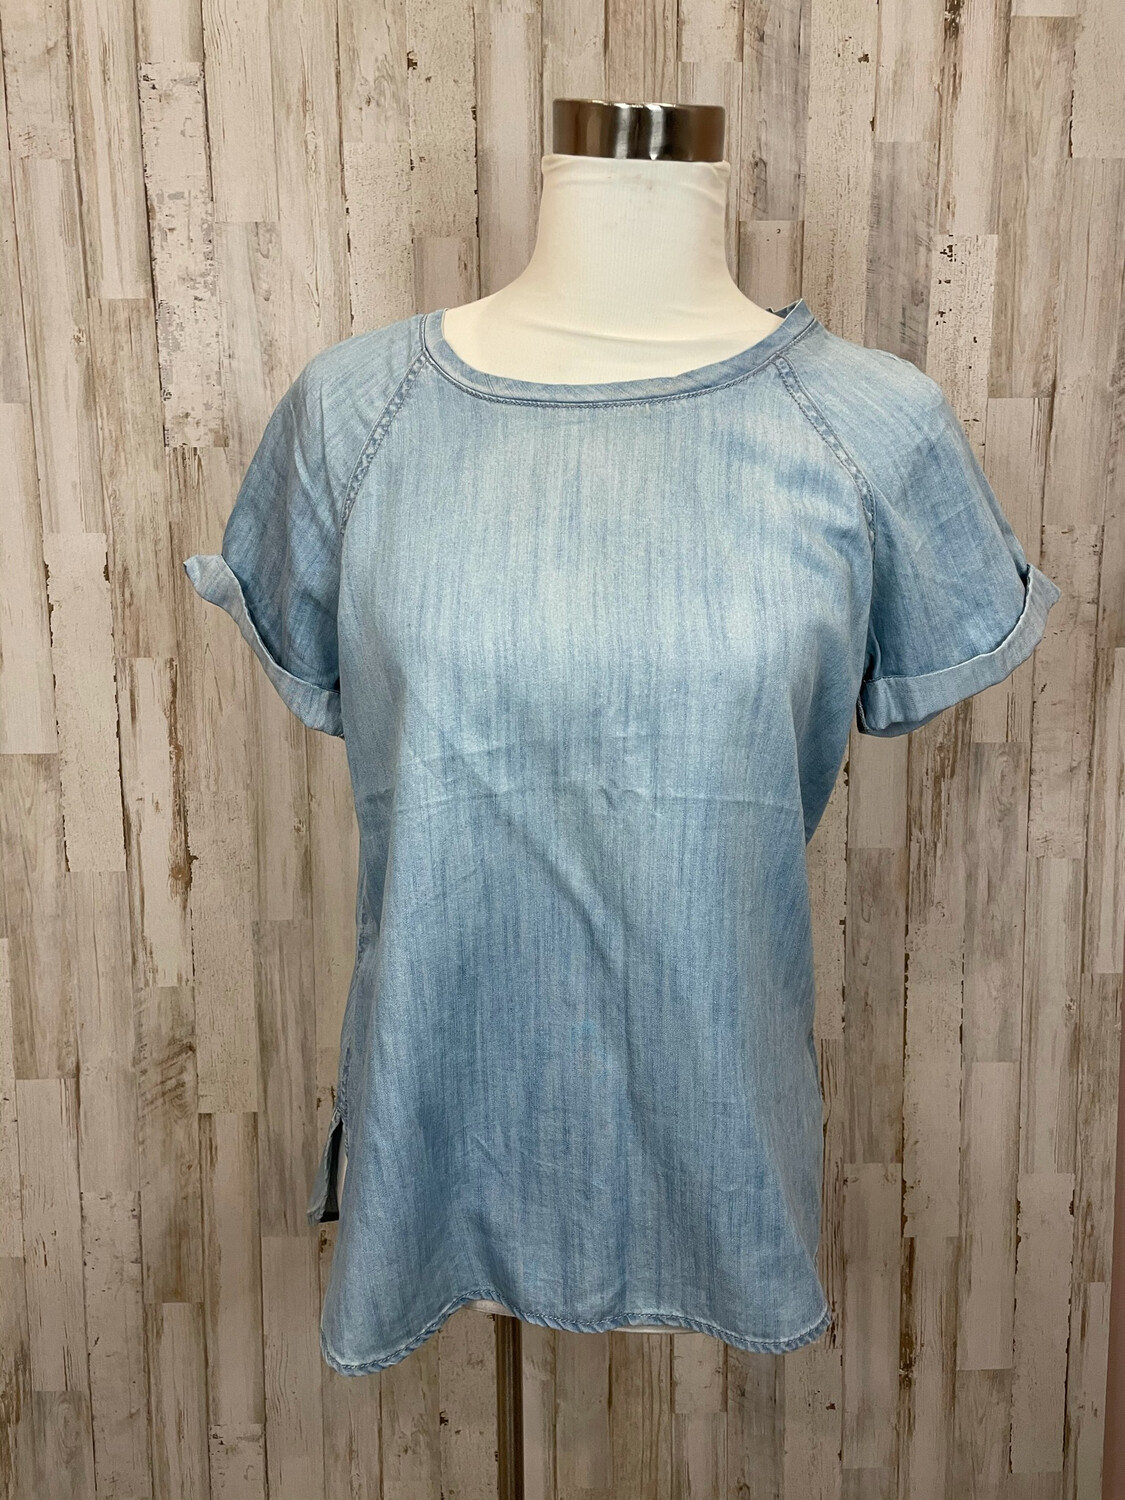 Life In Progress Chambray Top - S